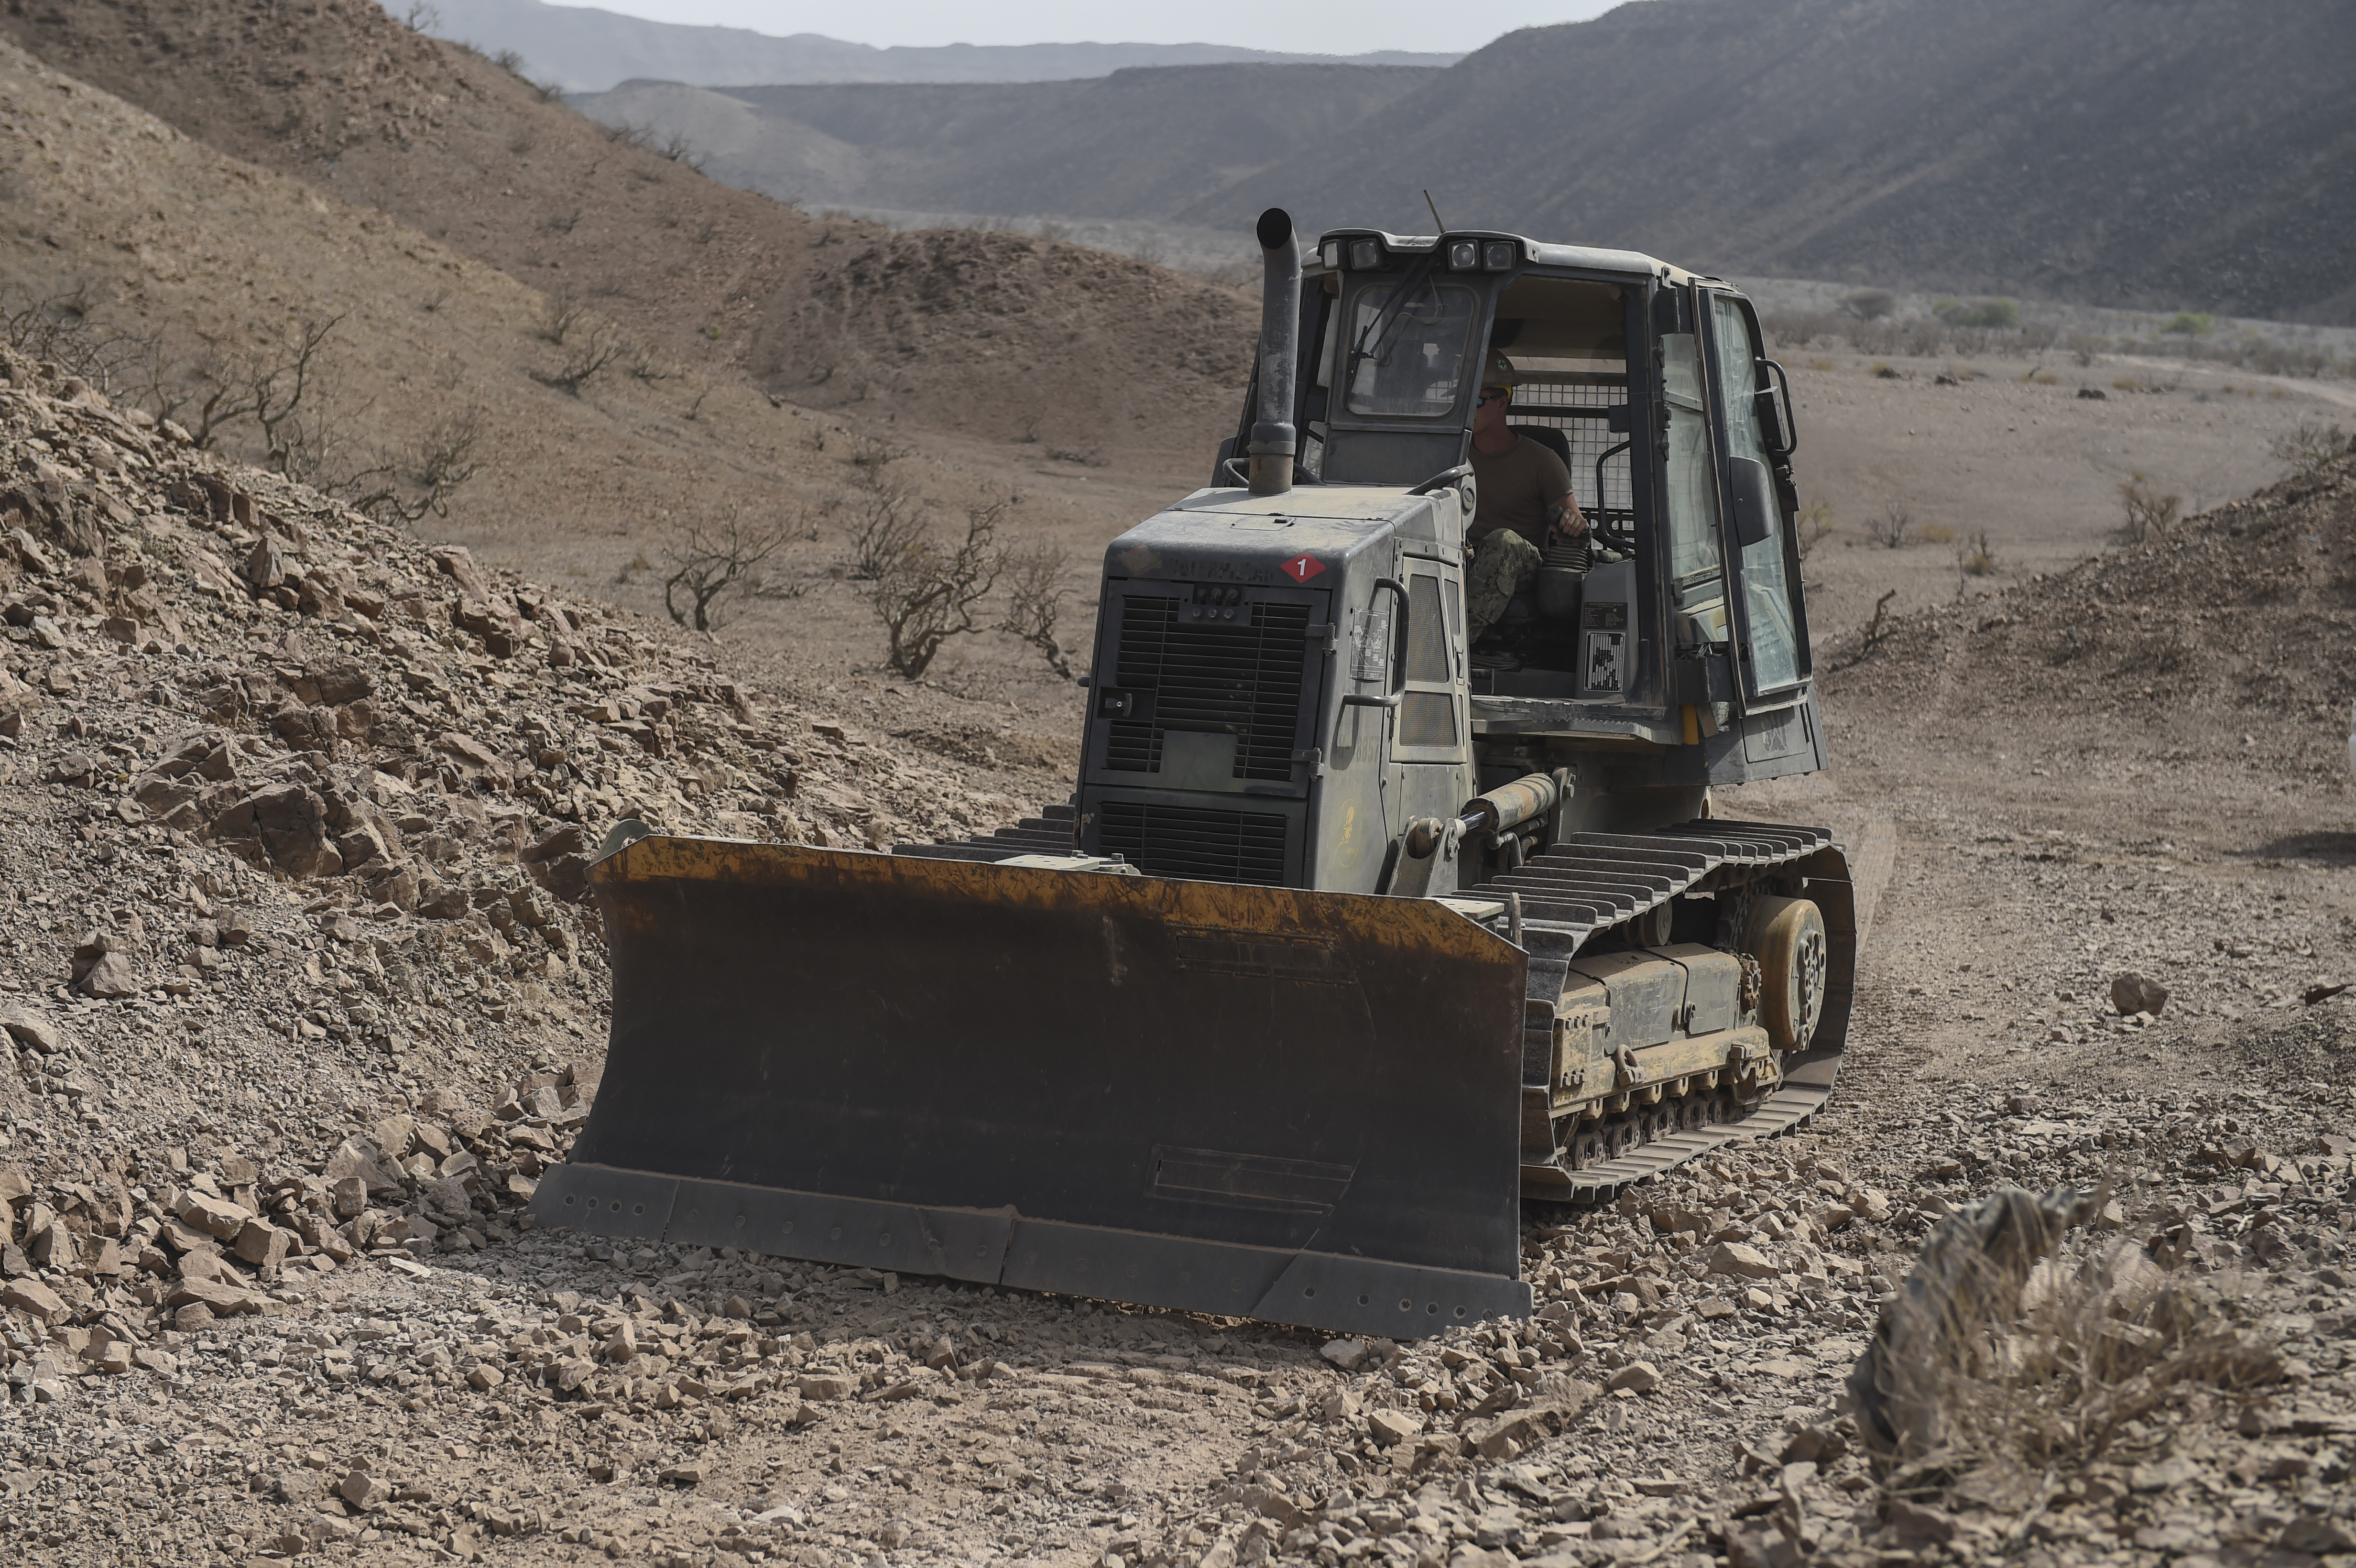 An equipment operator with the U.S. Naval Mobile Construction Battalion One uses a bulldozer to push rocks and dirt at a range near Arta, Djibouti, July 27, 2017. NMCB One supports Combined Joint Task Force-Horn of Africa through the completion of various construction projects throughout East Africa that aid in promoting stability in the region. (U.S. Air Force photo by Staff Sgt. Eboni Prince)